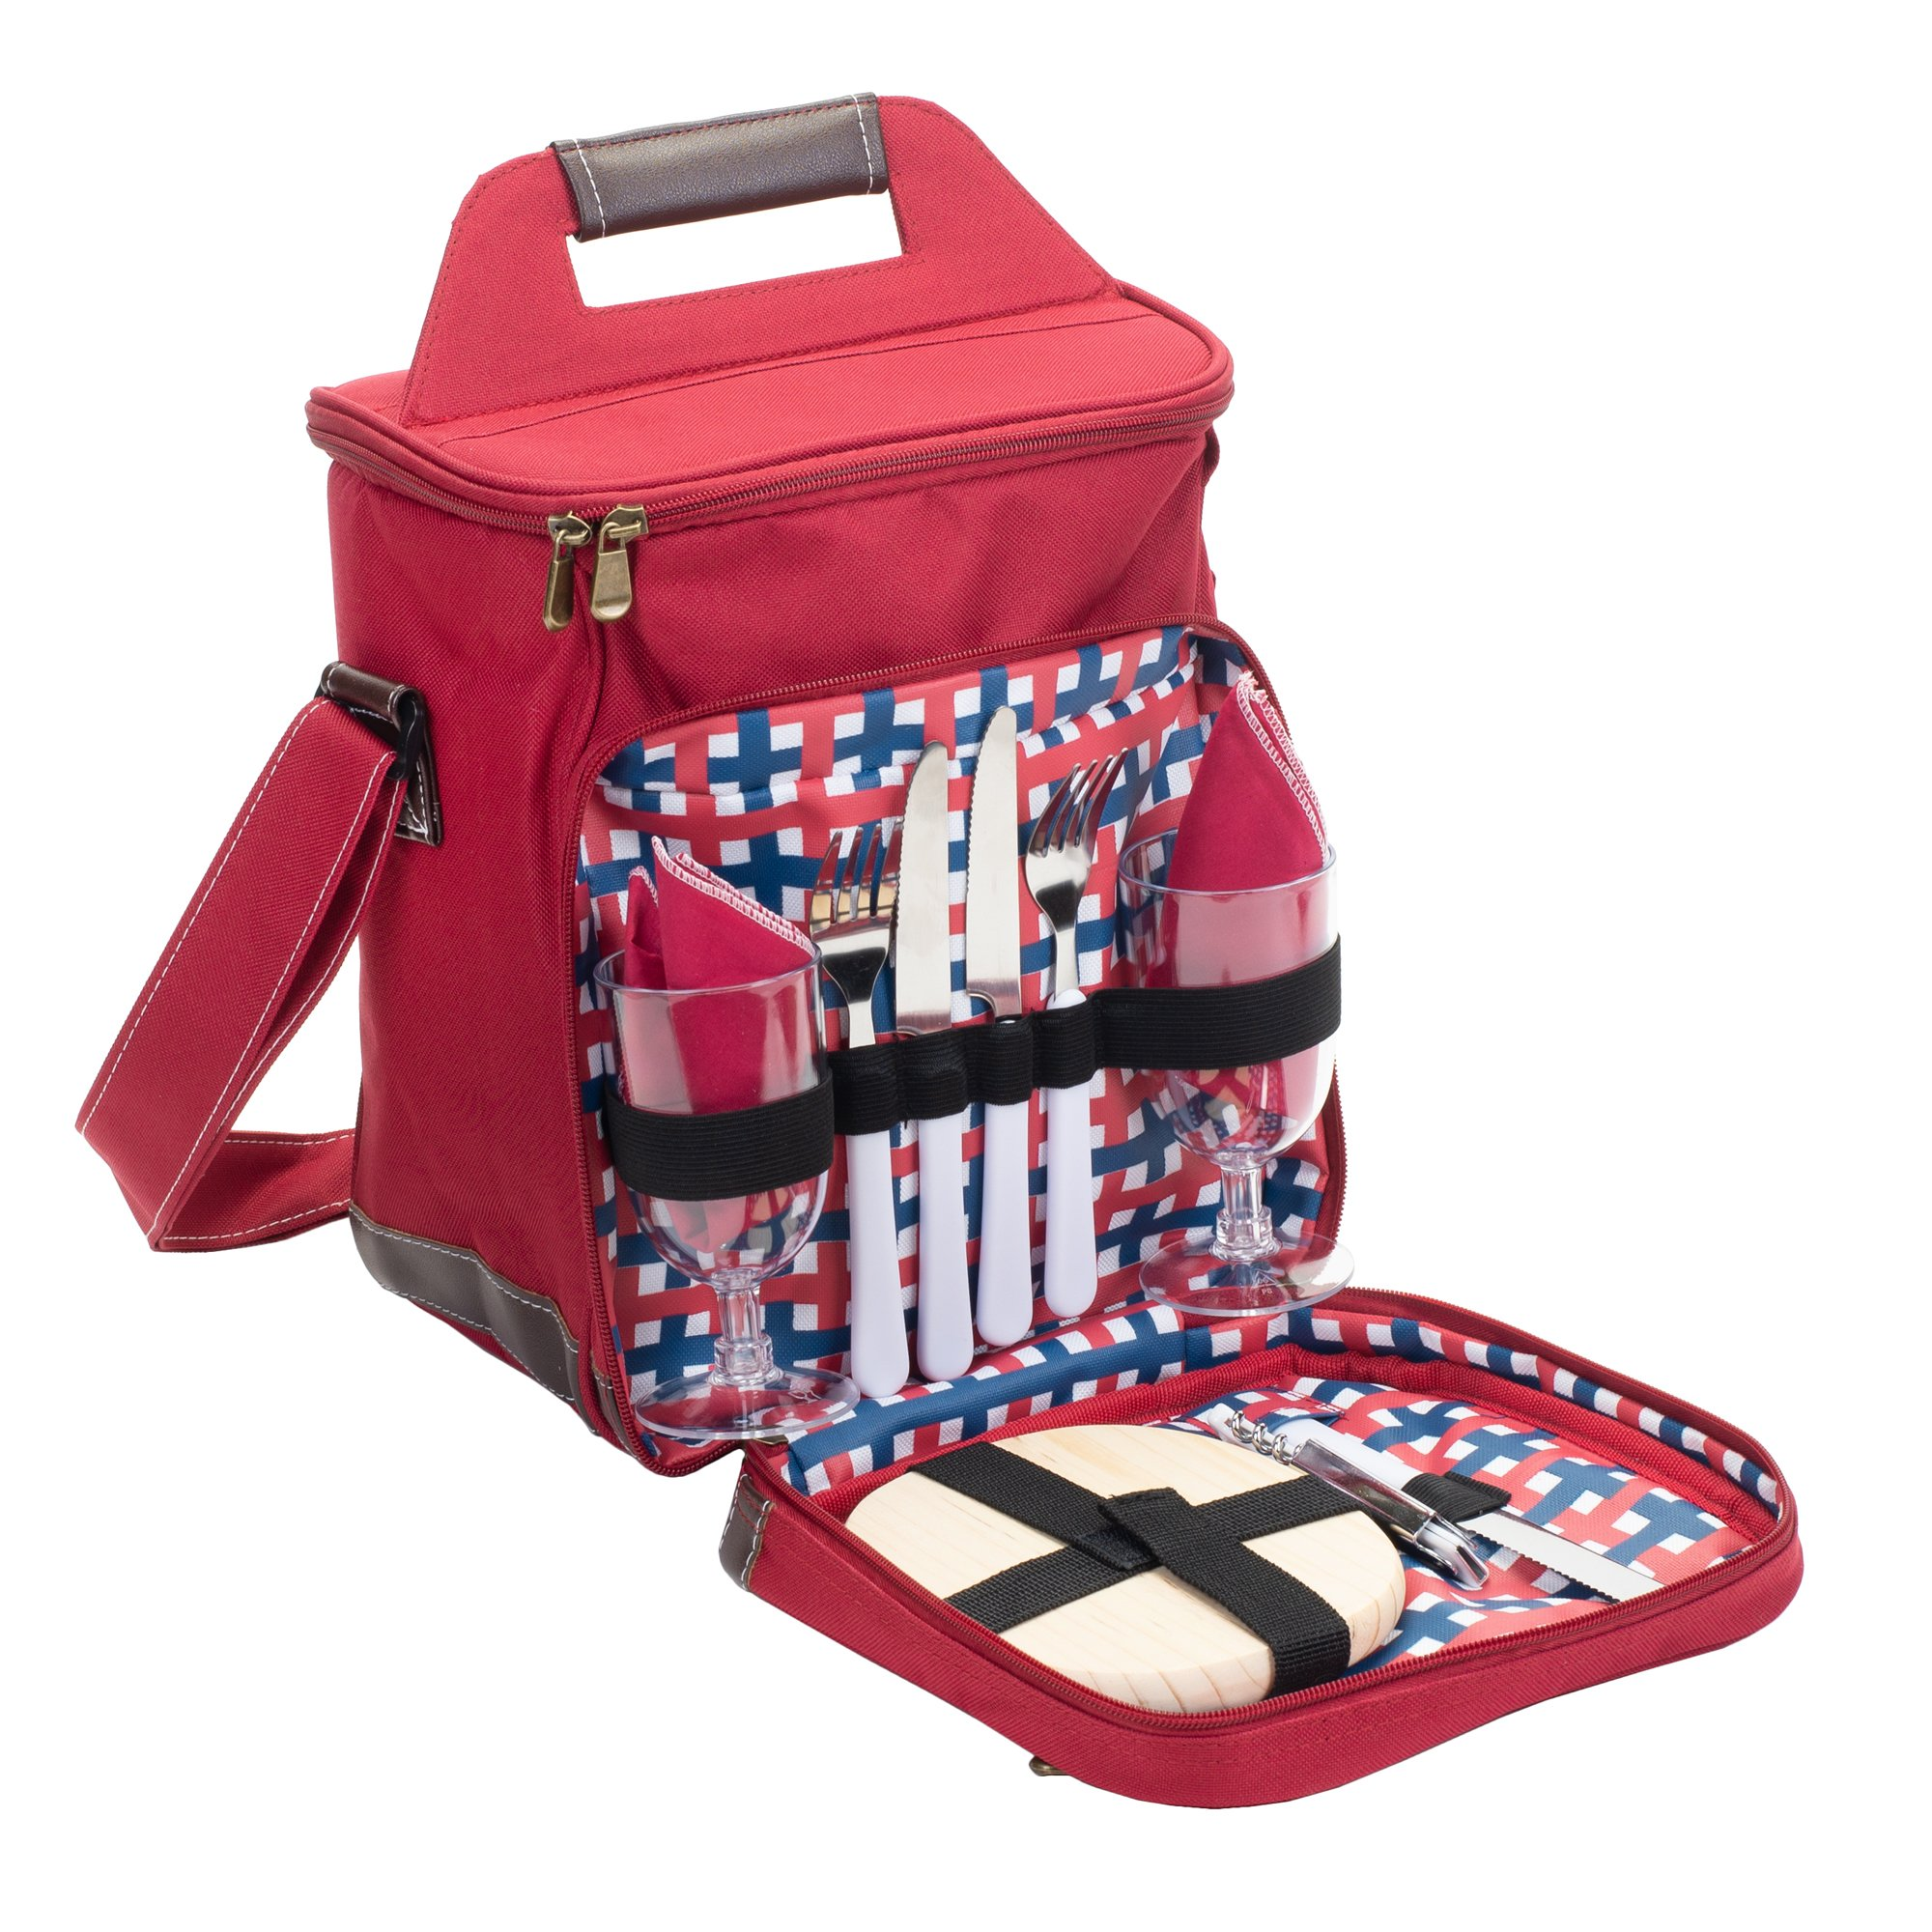 Class Collections 11 Piece Two Person Wine and Cheese Insulated Picnic Cooler Bag Set, Red